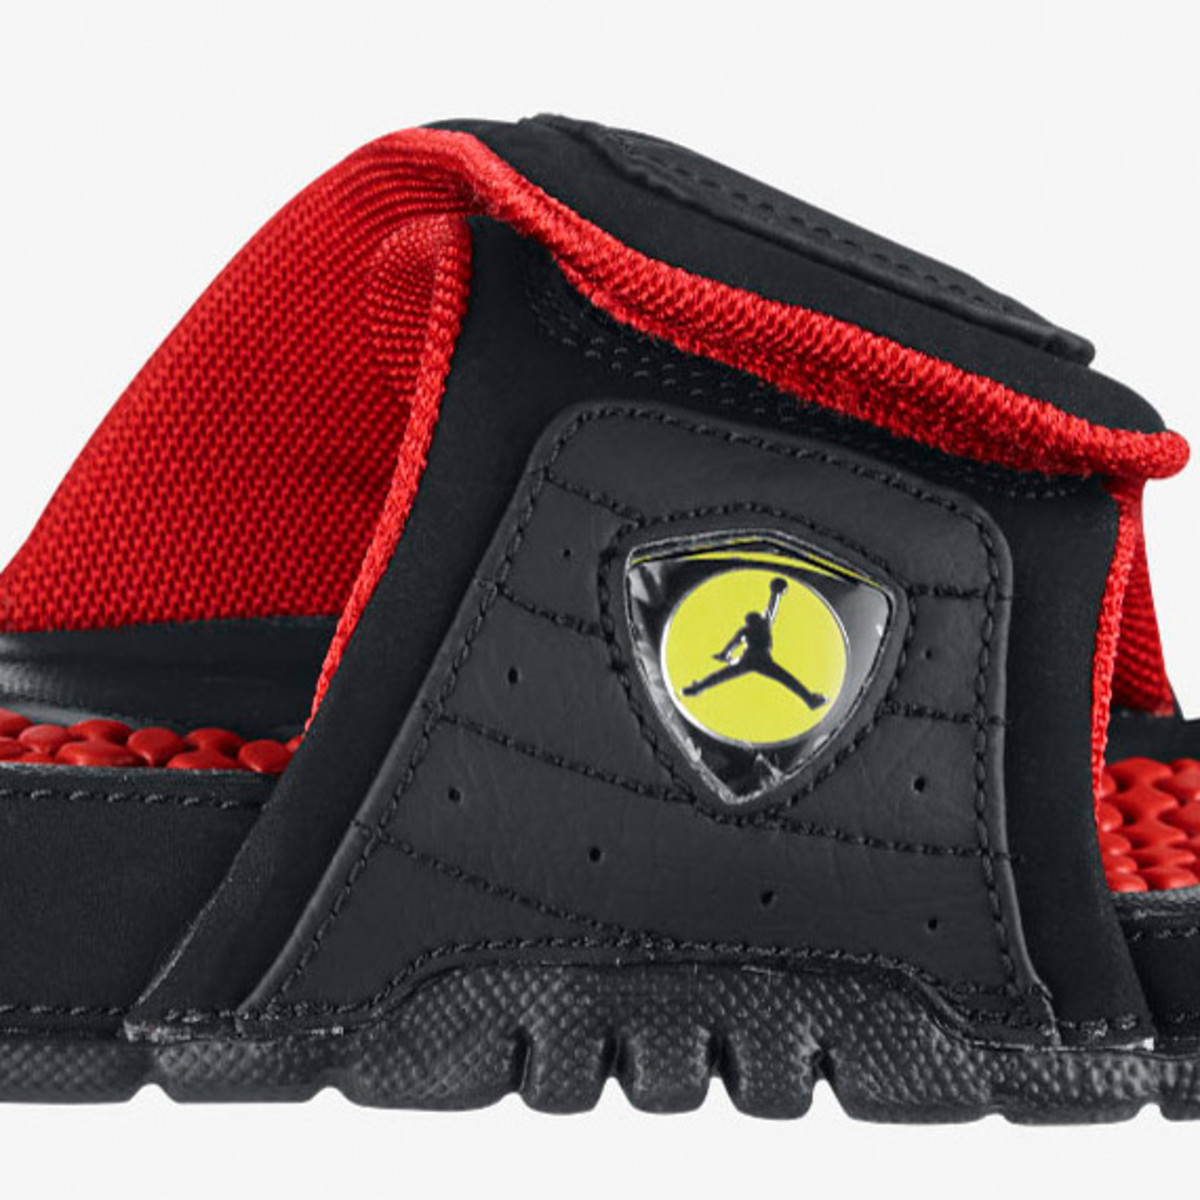 fb43f112d980 ... Jordan Brand is wrapping up the season in a memorable matter with its Jordan  Hydro XIV Retro Slide. Inspired by the prized Air Jordan 14 Retro